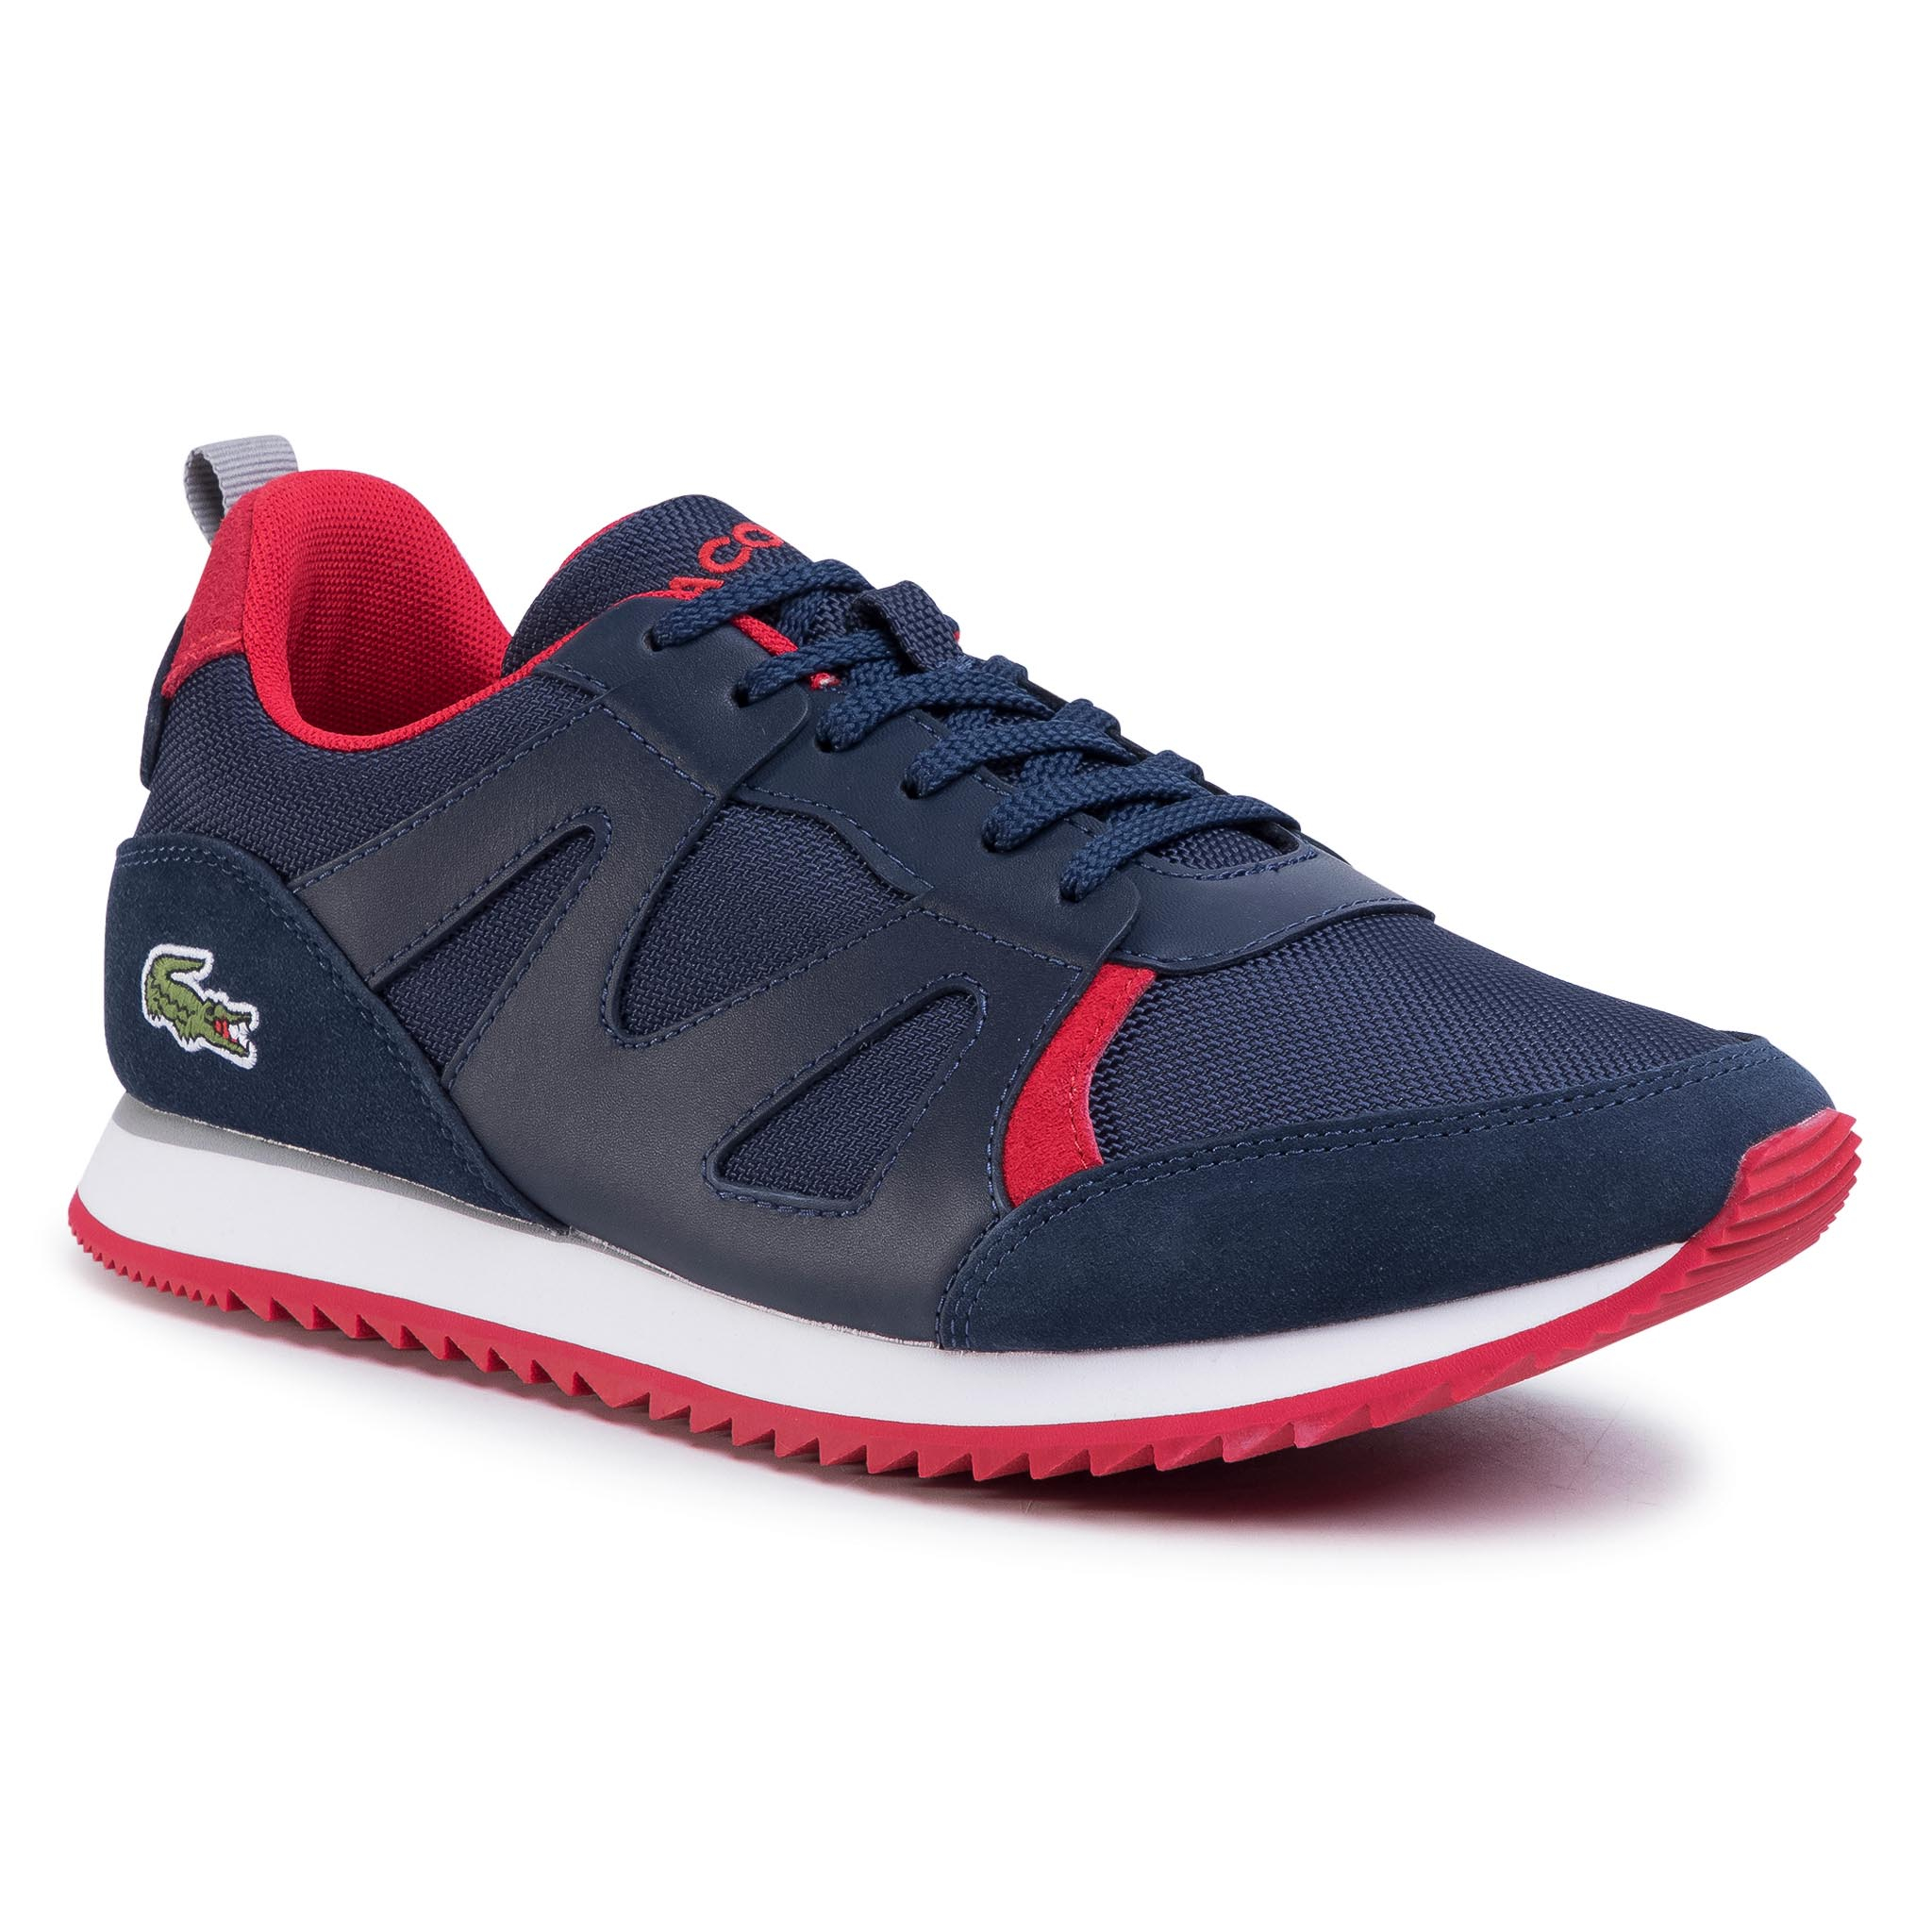 Sneakers LACOSTE - Aesthet 120 2 Sma 7-39SMA0035144 Nvy/Red